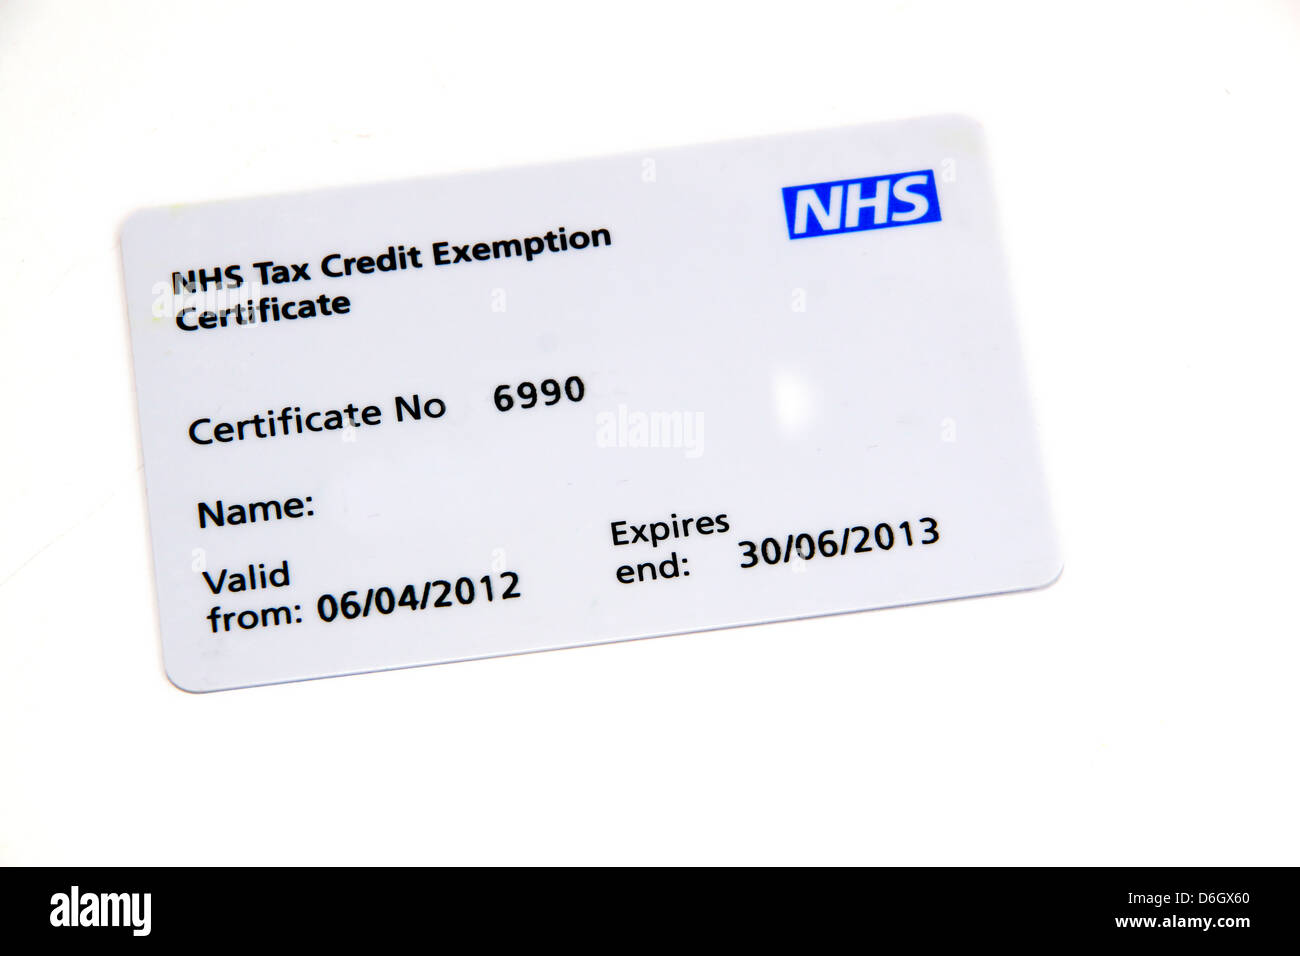 Exemption certificate stock photos exemption certificate stock uk nhs tax credit exemption certificate card stock image thecheapjerseys Images